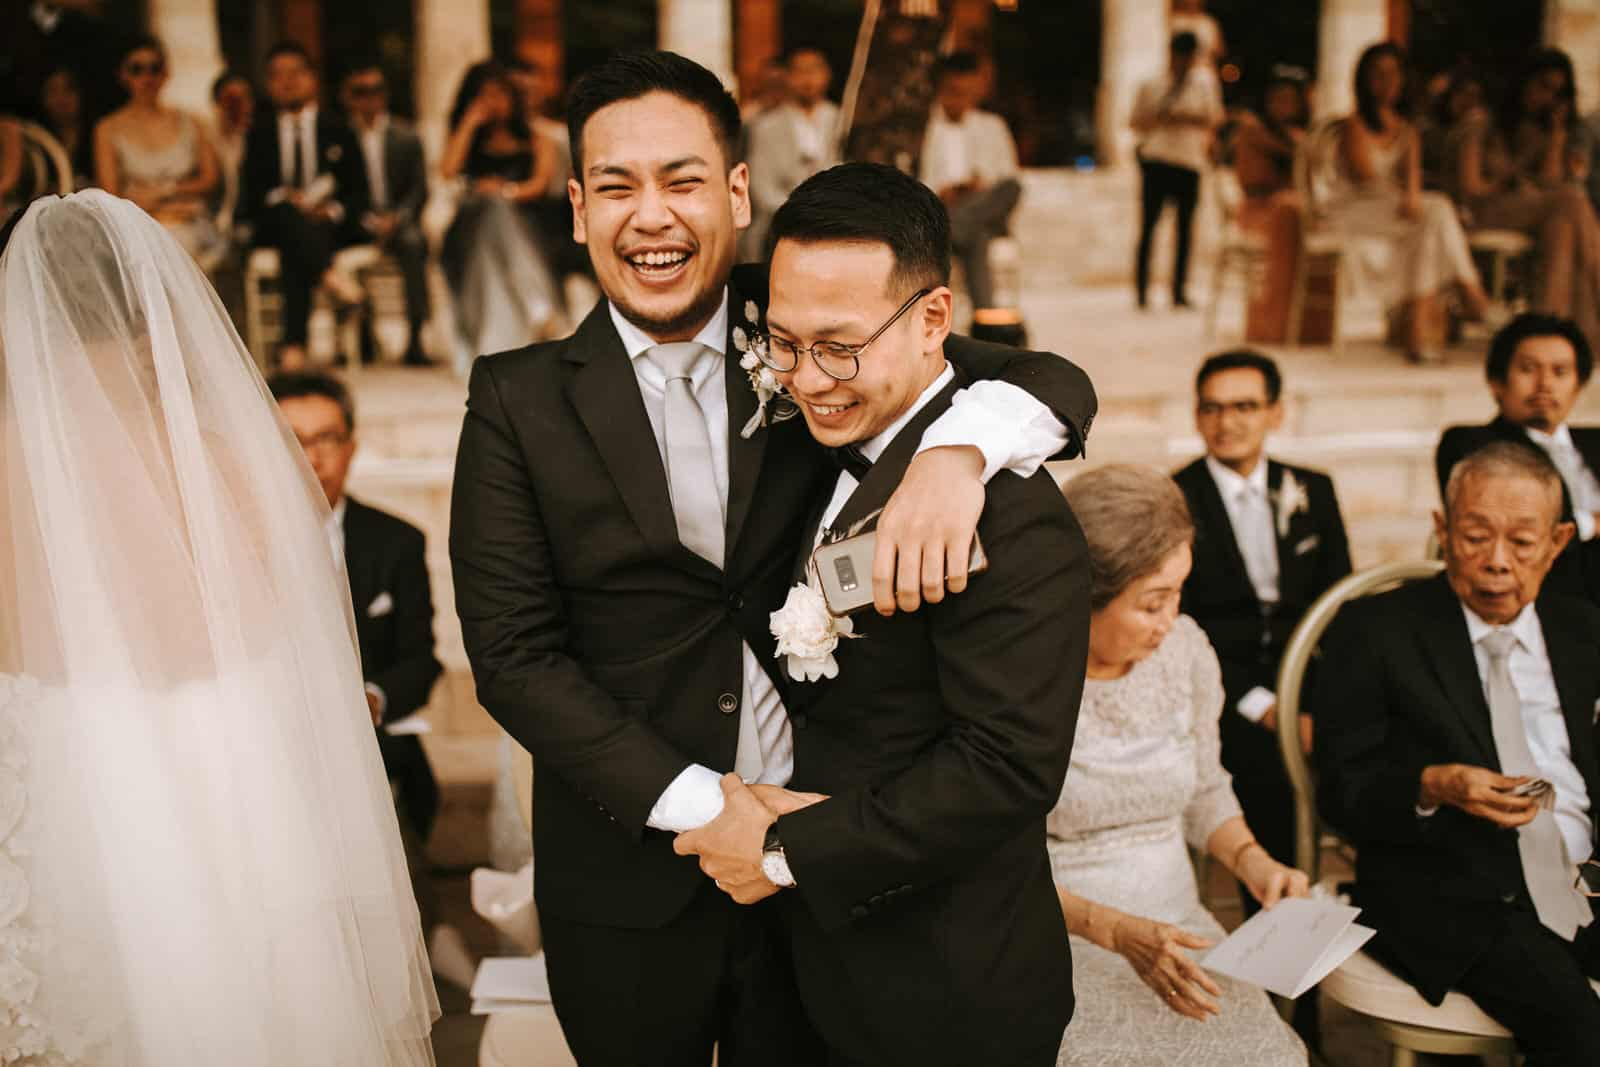 The groom is hugging his groomsman.